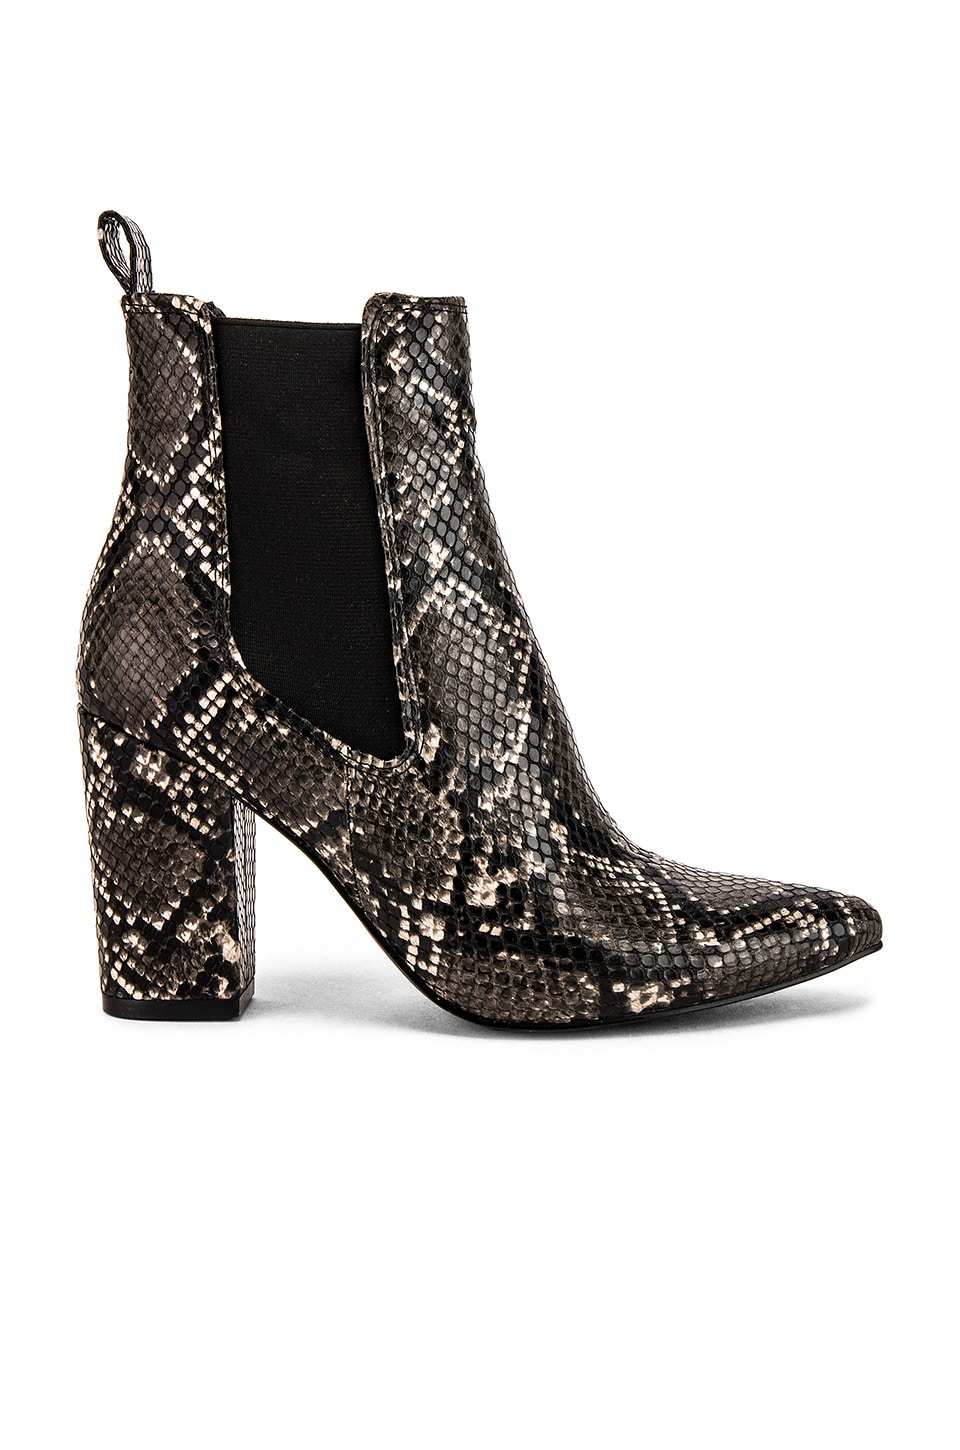 Steve Madden Subtle Ankle Bootie in Grey Snake